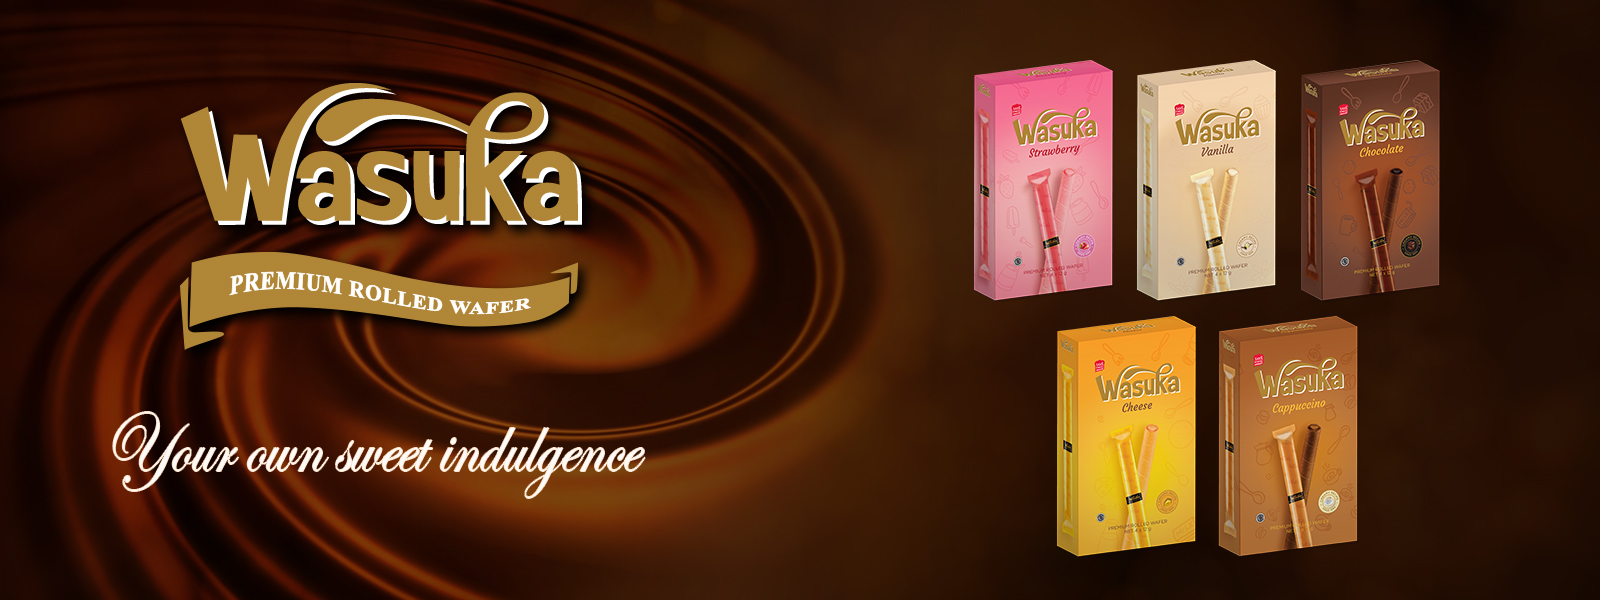 Wasuka Premium Rolled Wafer